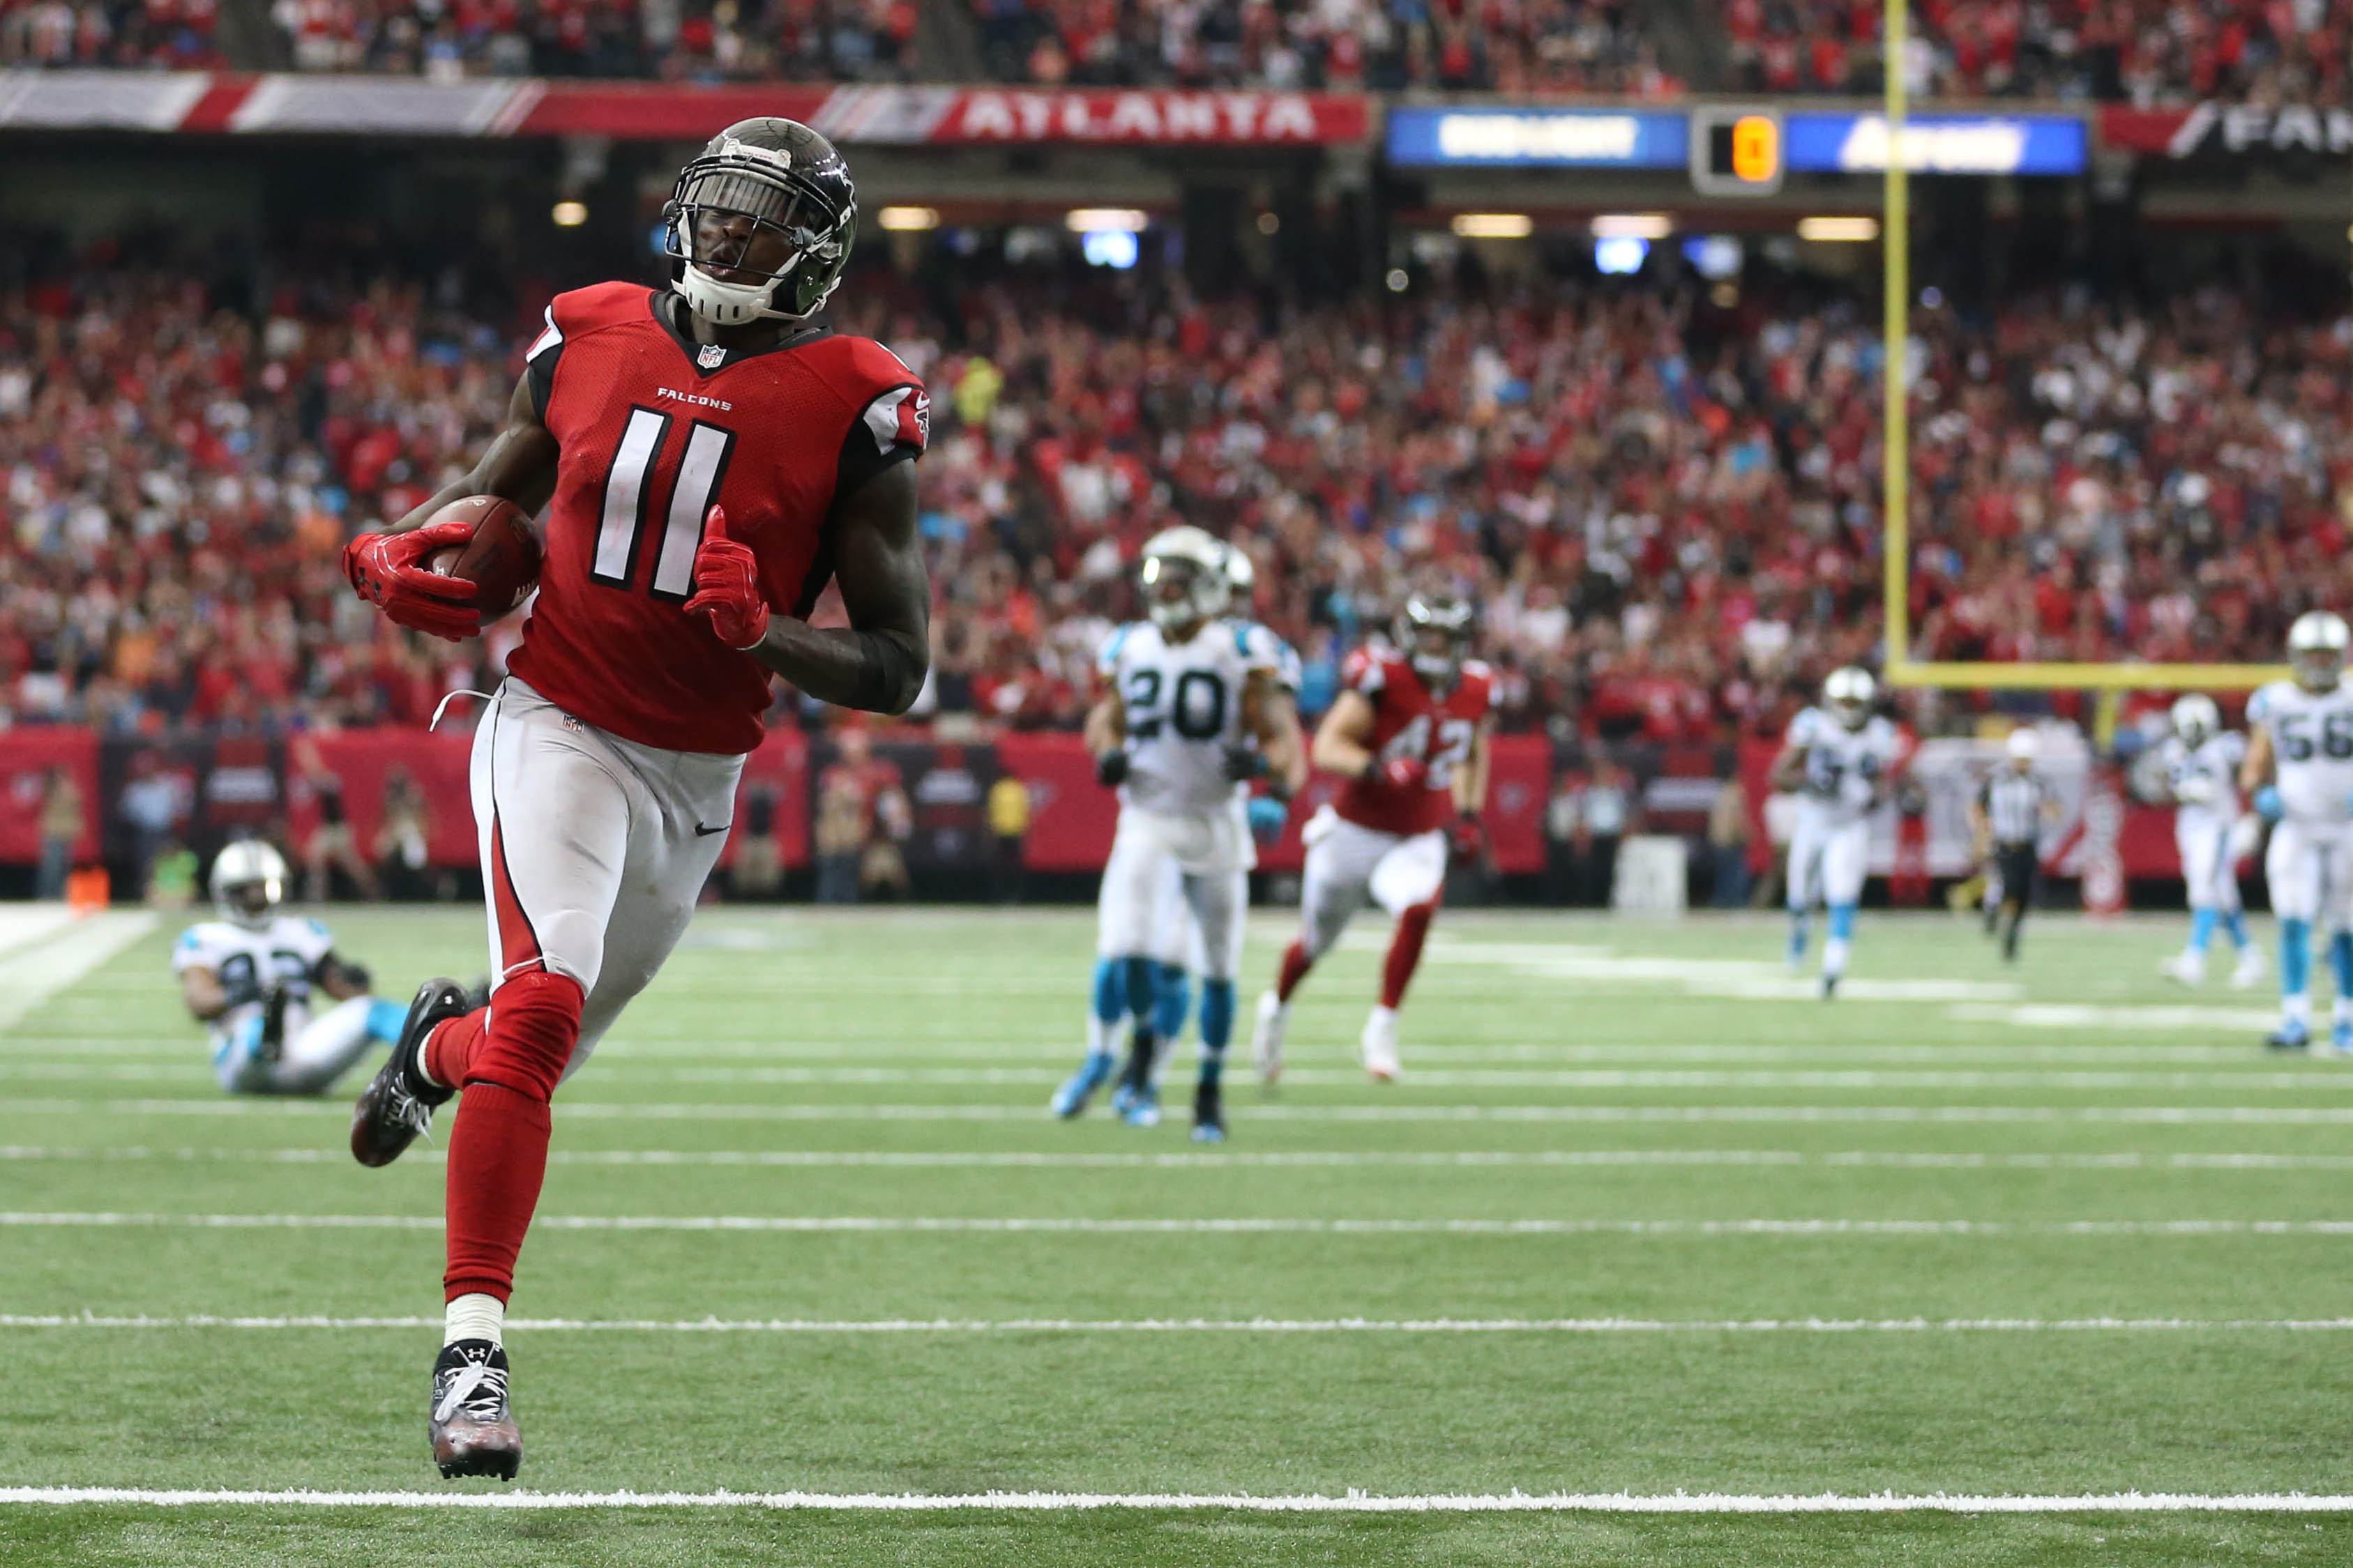 9585819-nfl-carolina-panthers-at-atlanta-falcons